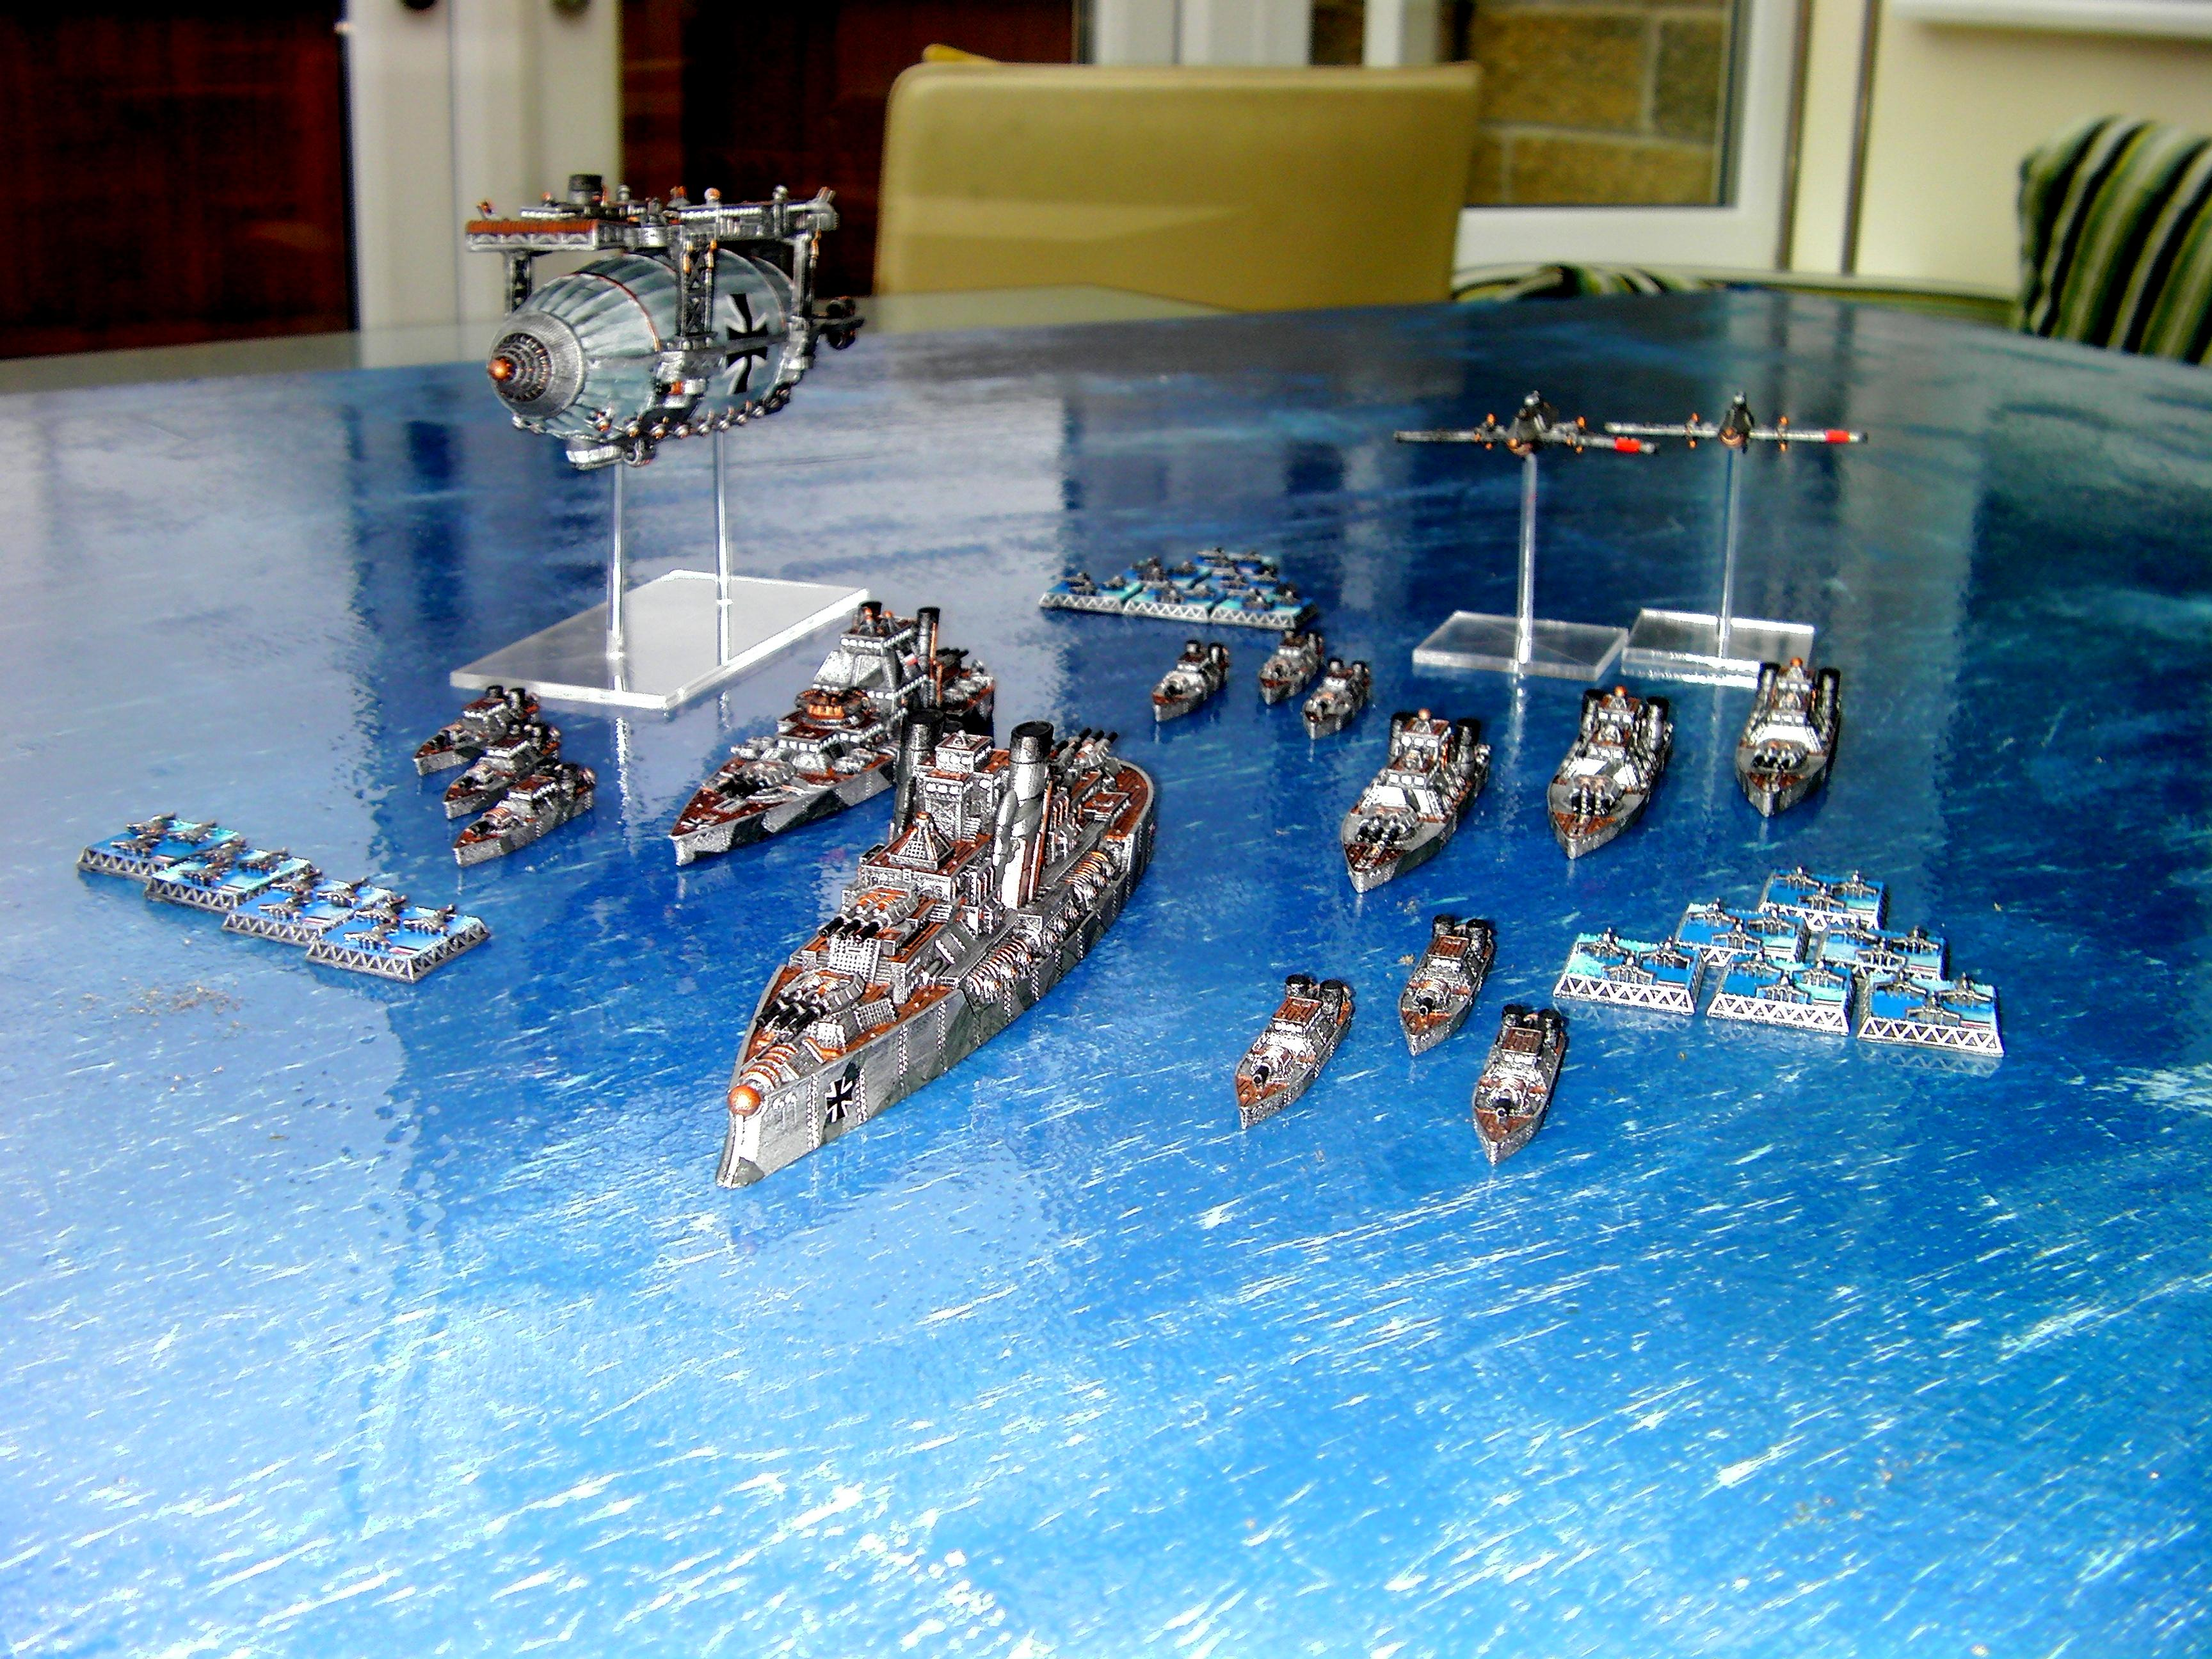 Dystopia, Dystopian, Dystopian Wars, Dystopian-wars, Fleet, Fleets, German Fleet, Germans, Kingdom Of Prussian, Prussian, Prussian Fleet, Sailing, Ships, Spartan Games, War